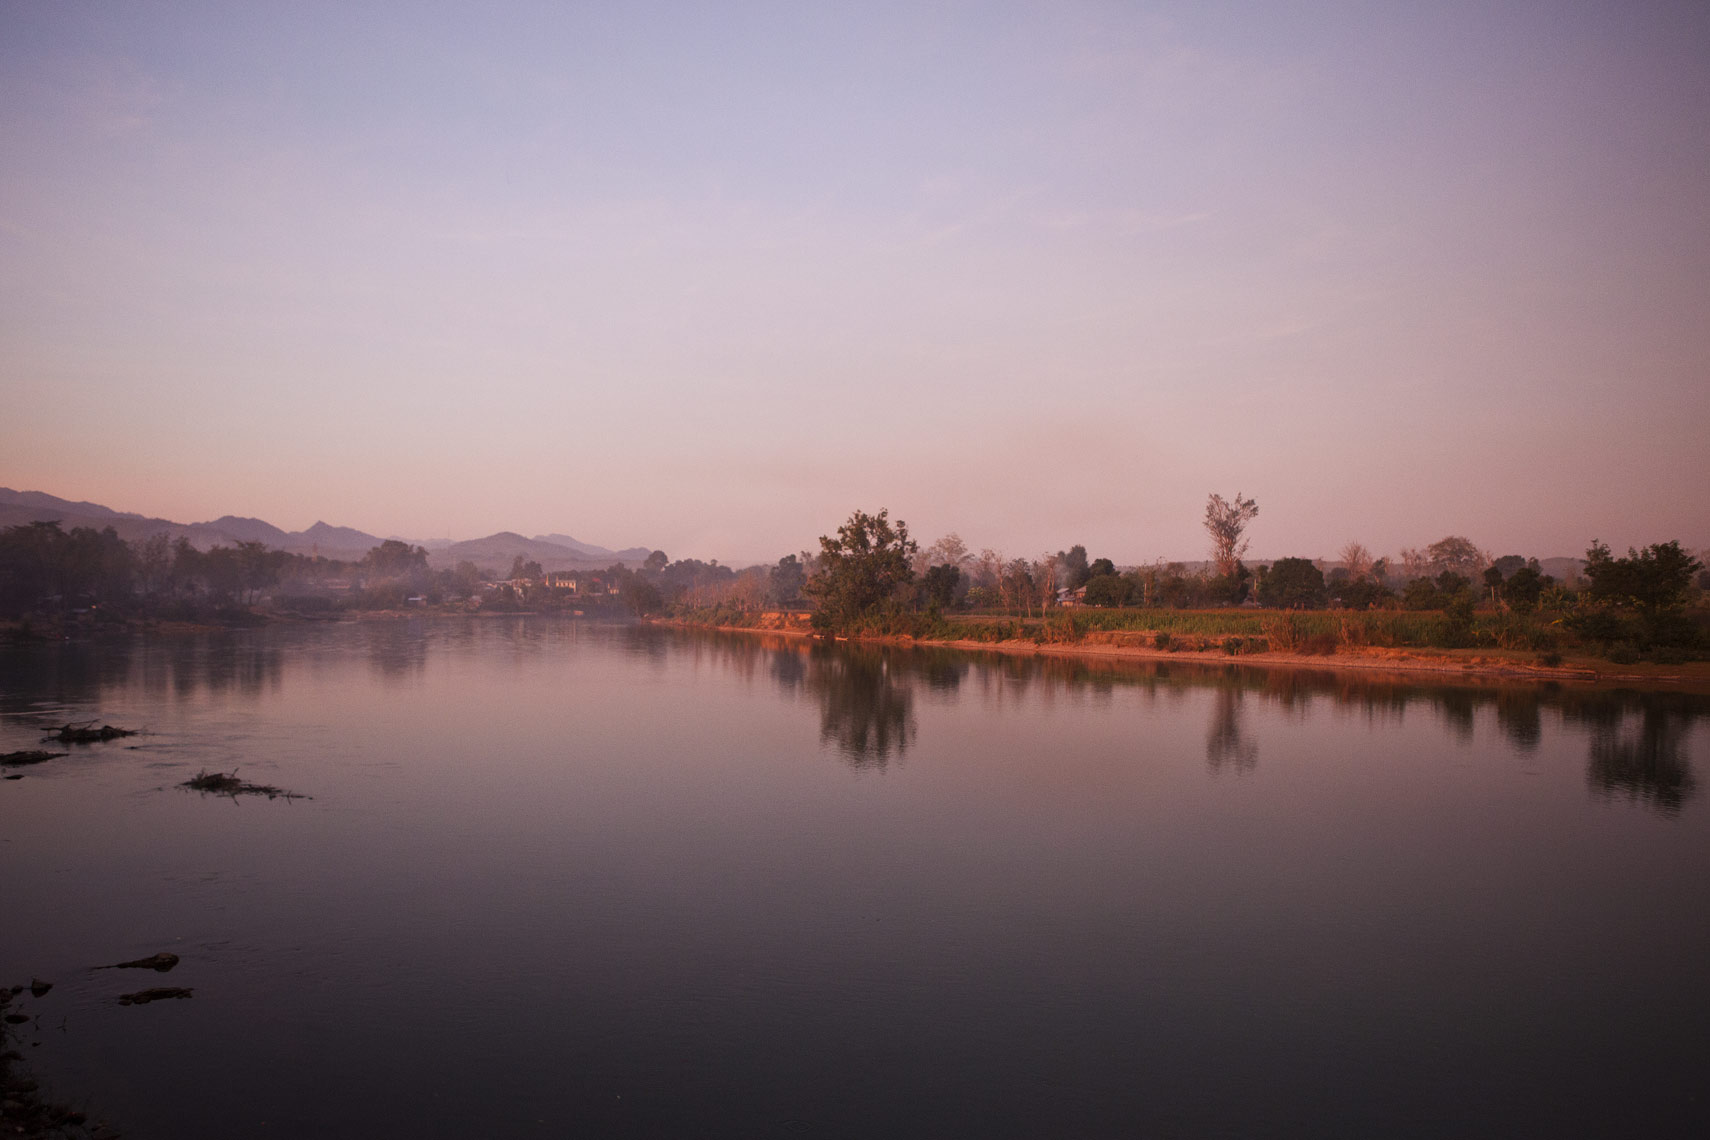 hsipaw-river-at-sunset-print.jpg